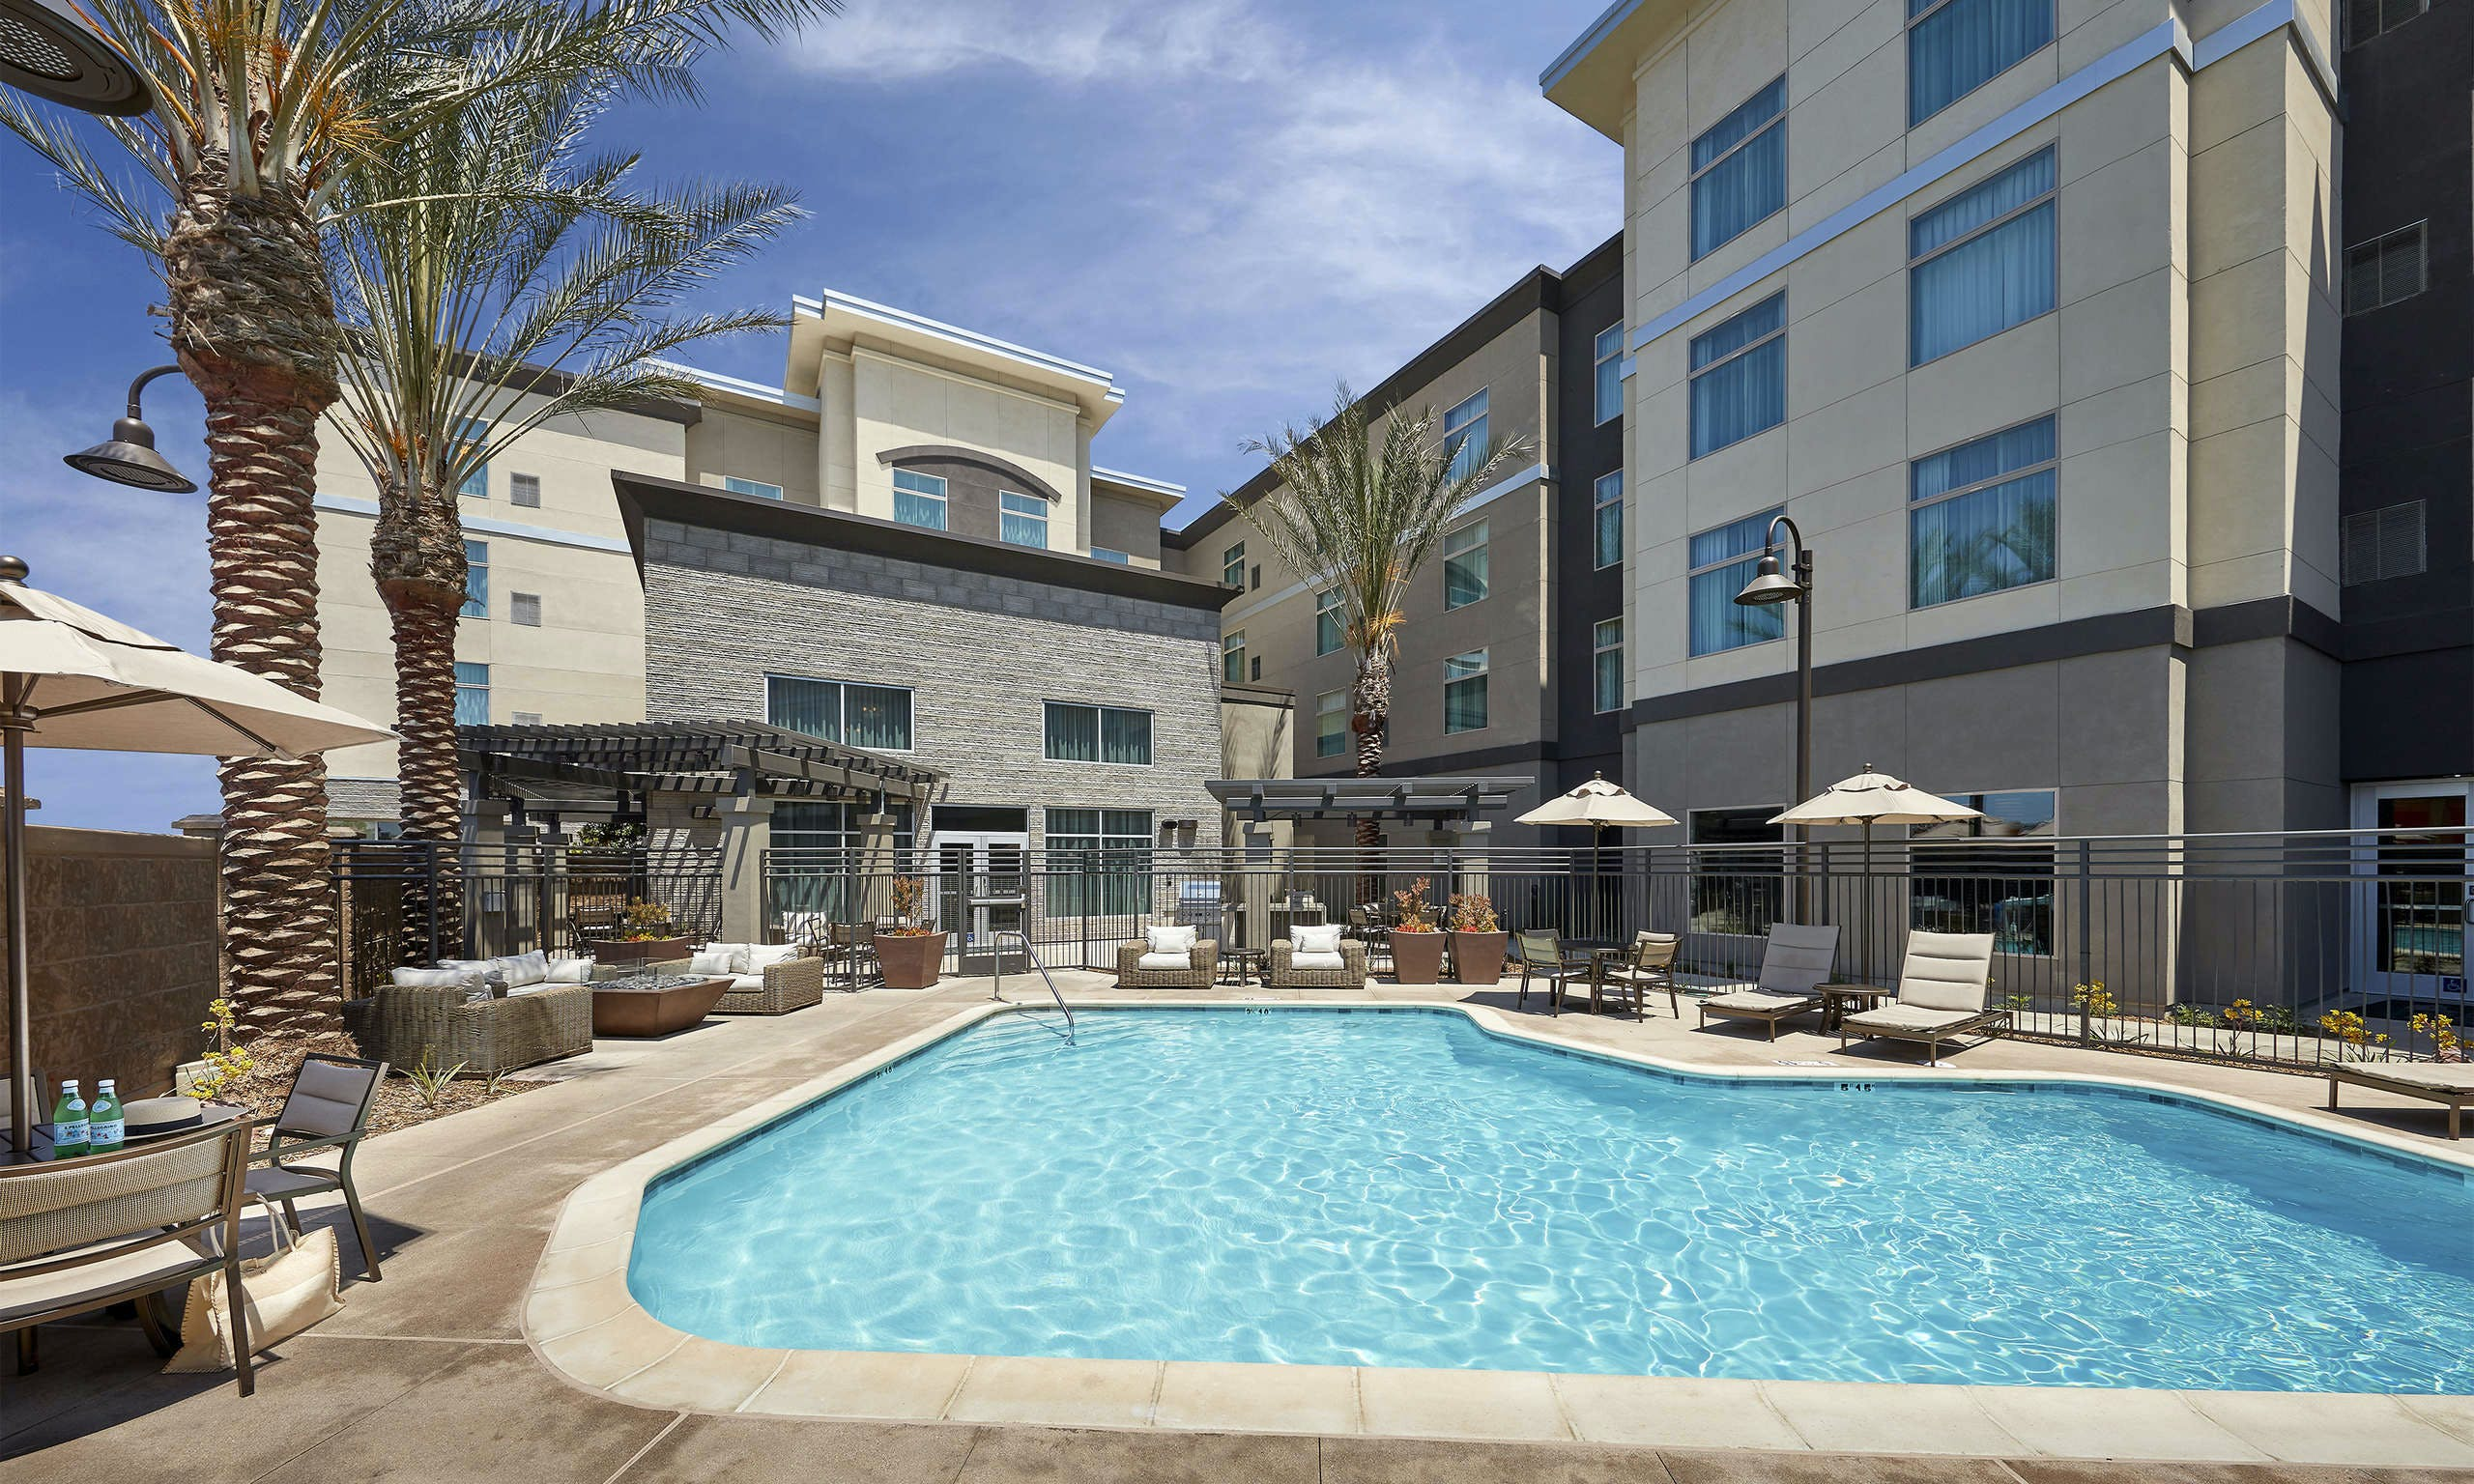 Homewood Suites by Hilton Los Angeles Redondo Beach